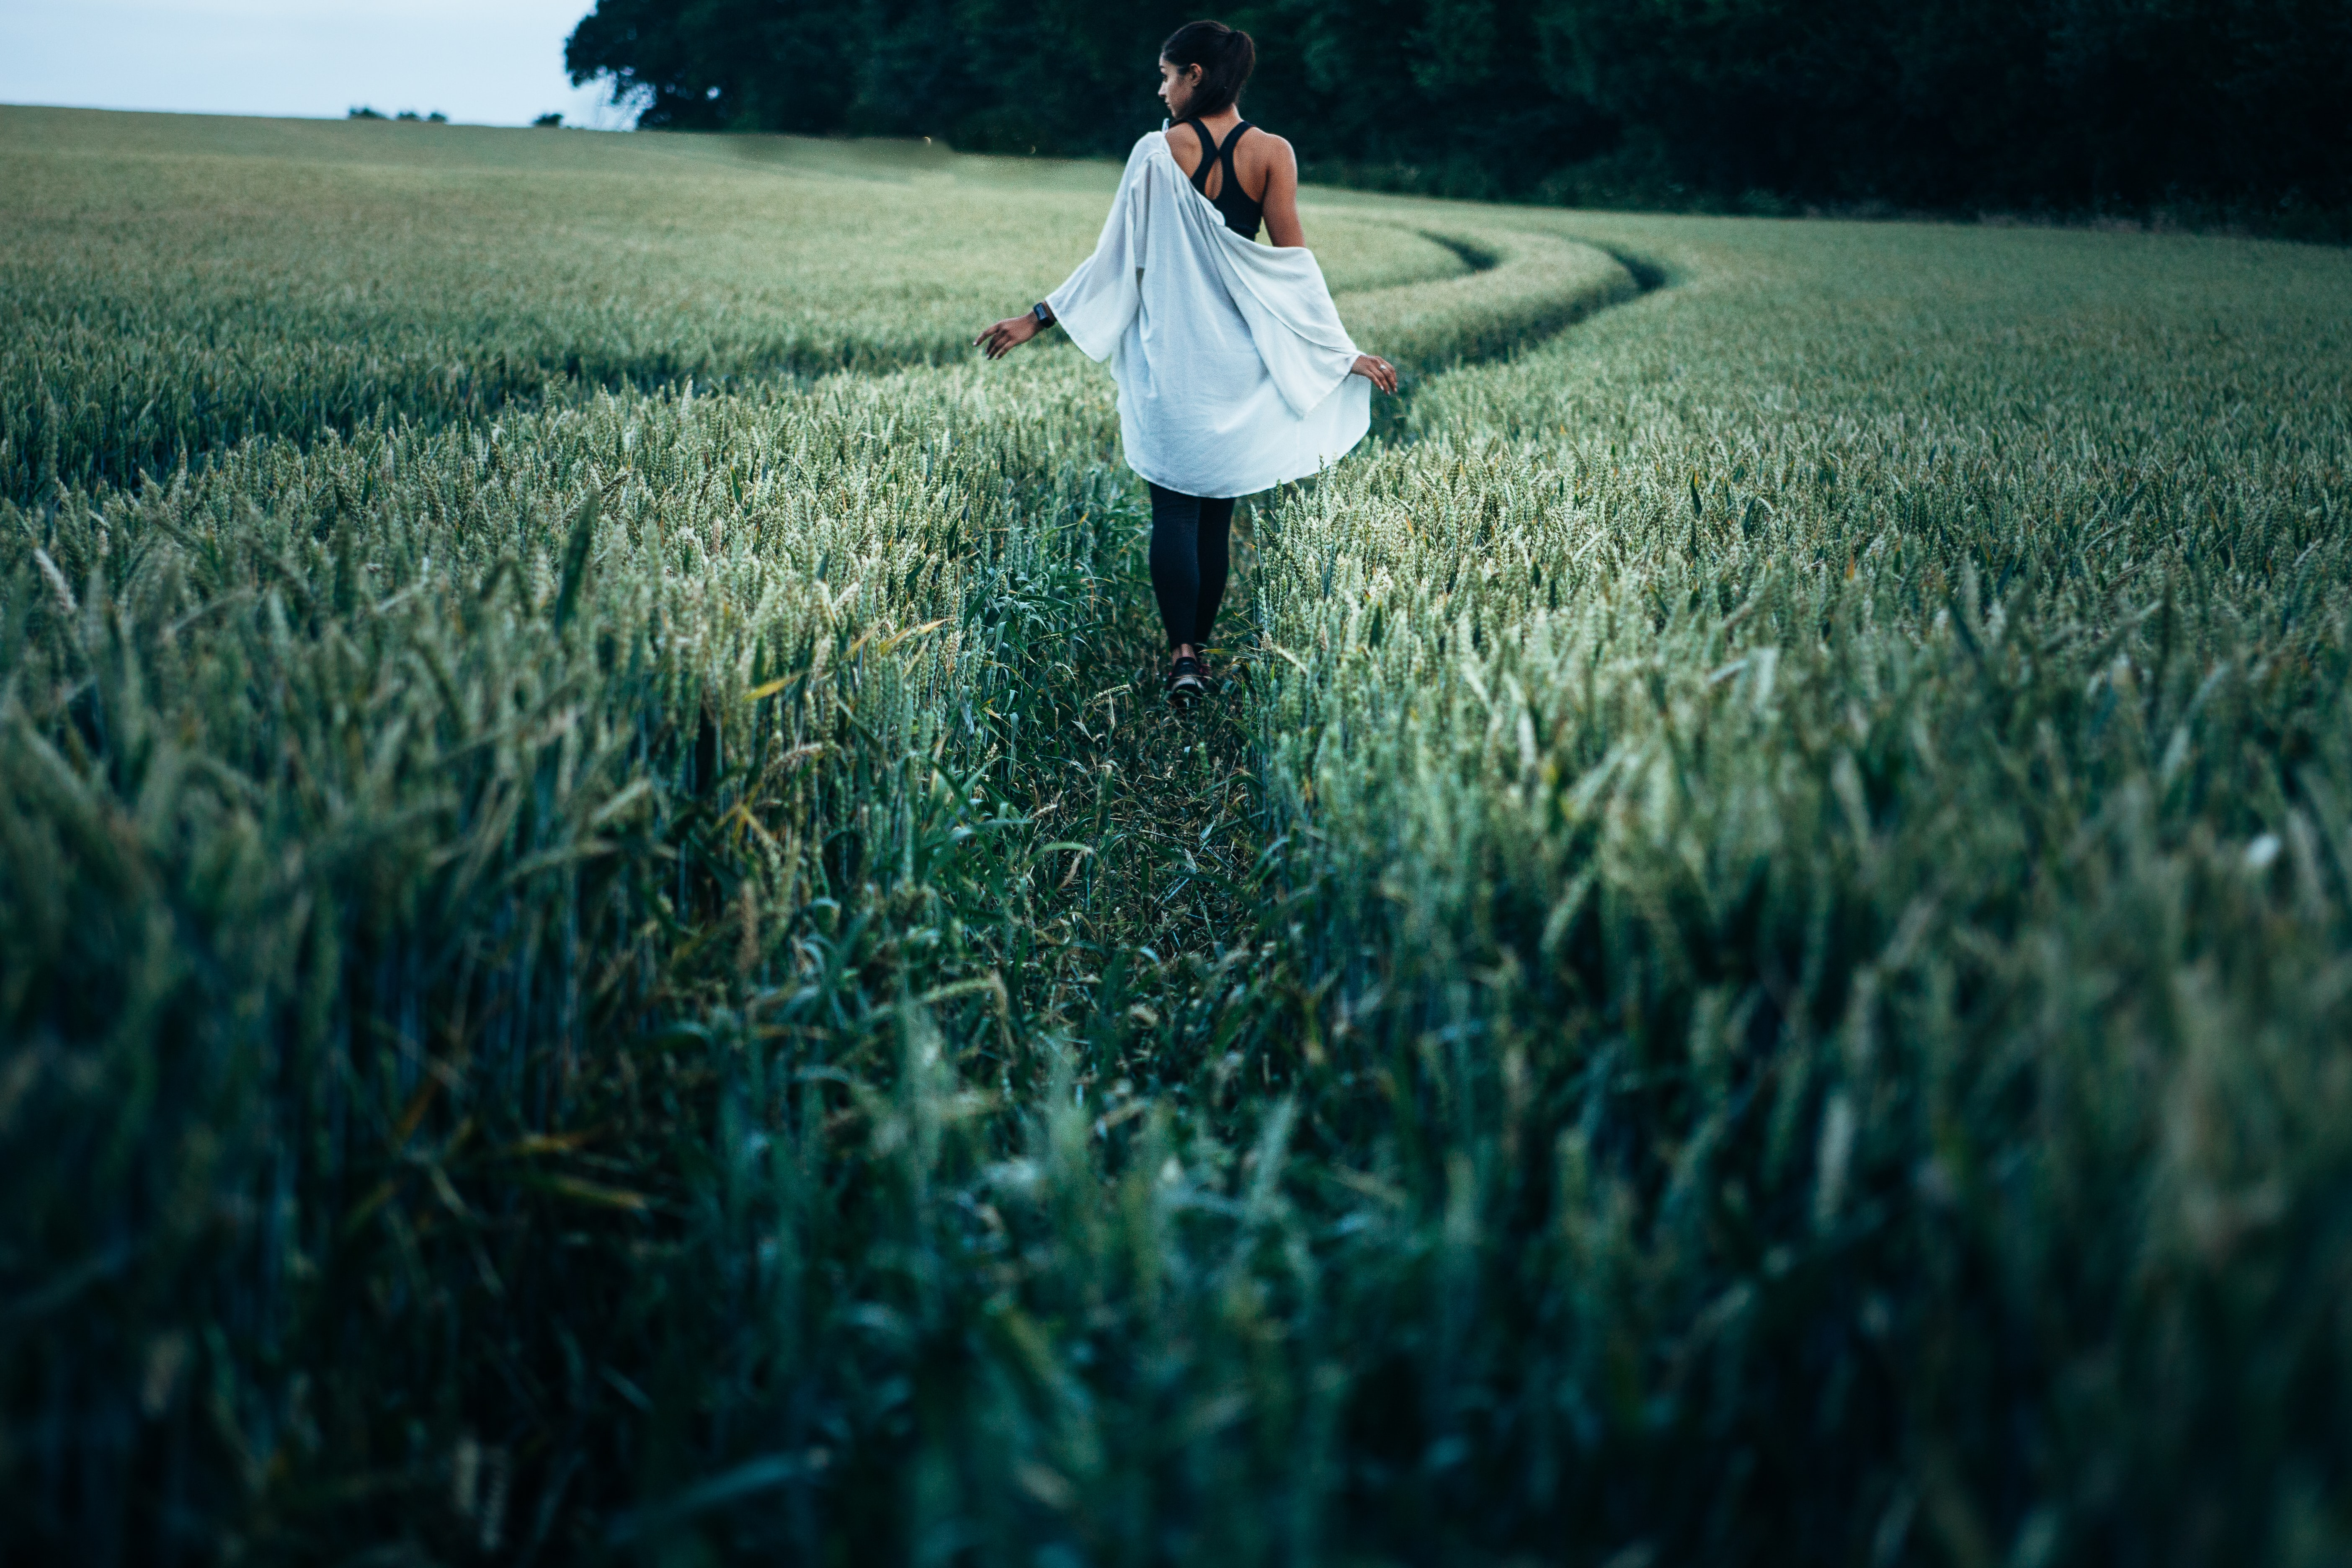 woman walking on grass field